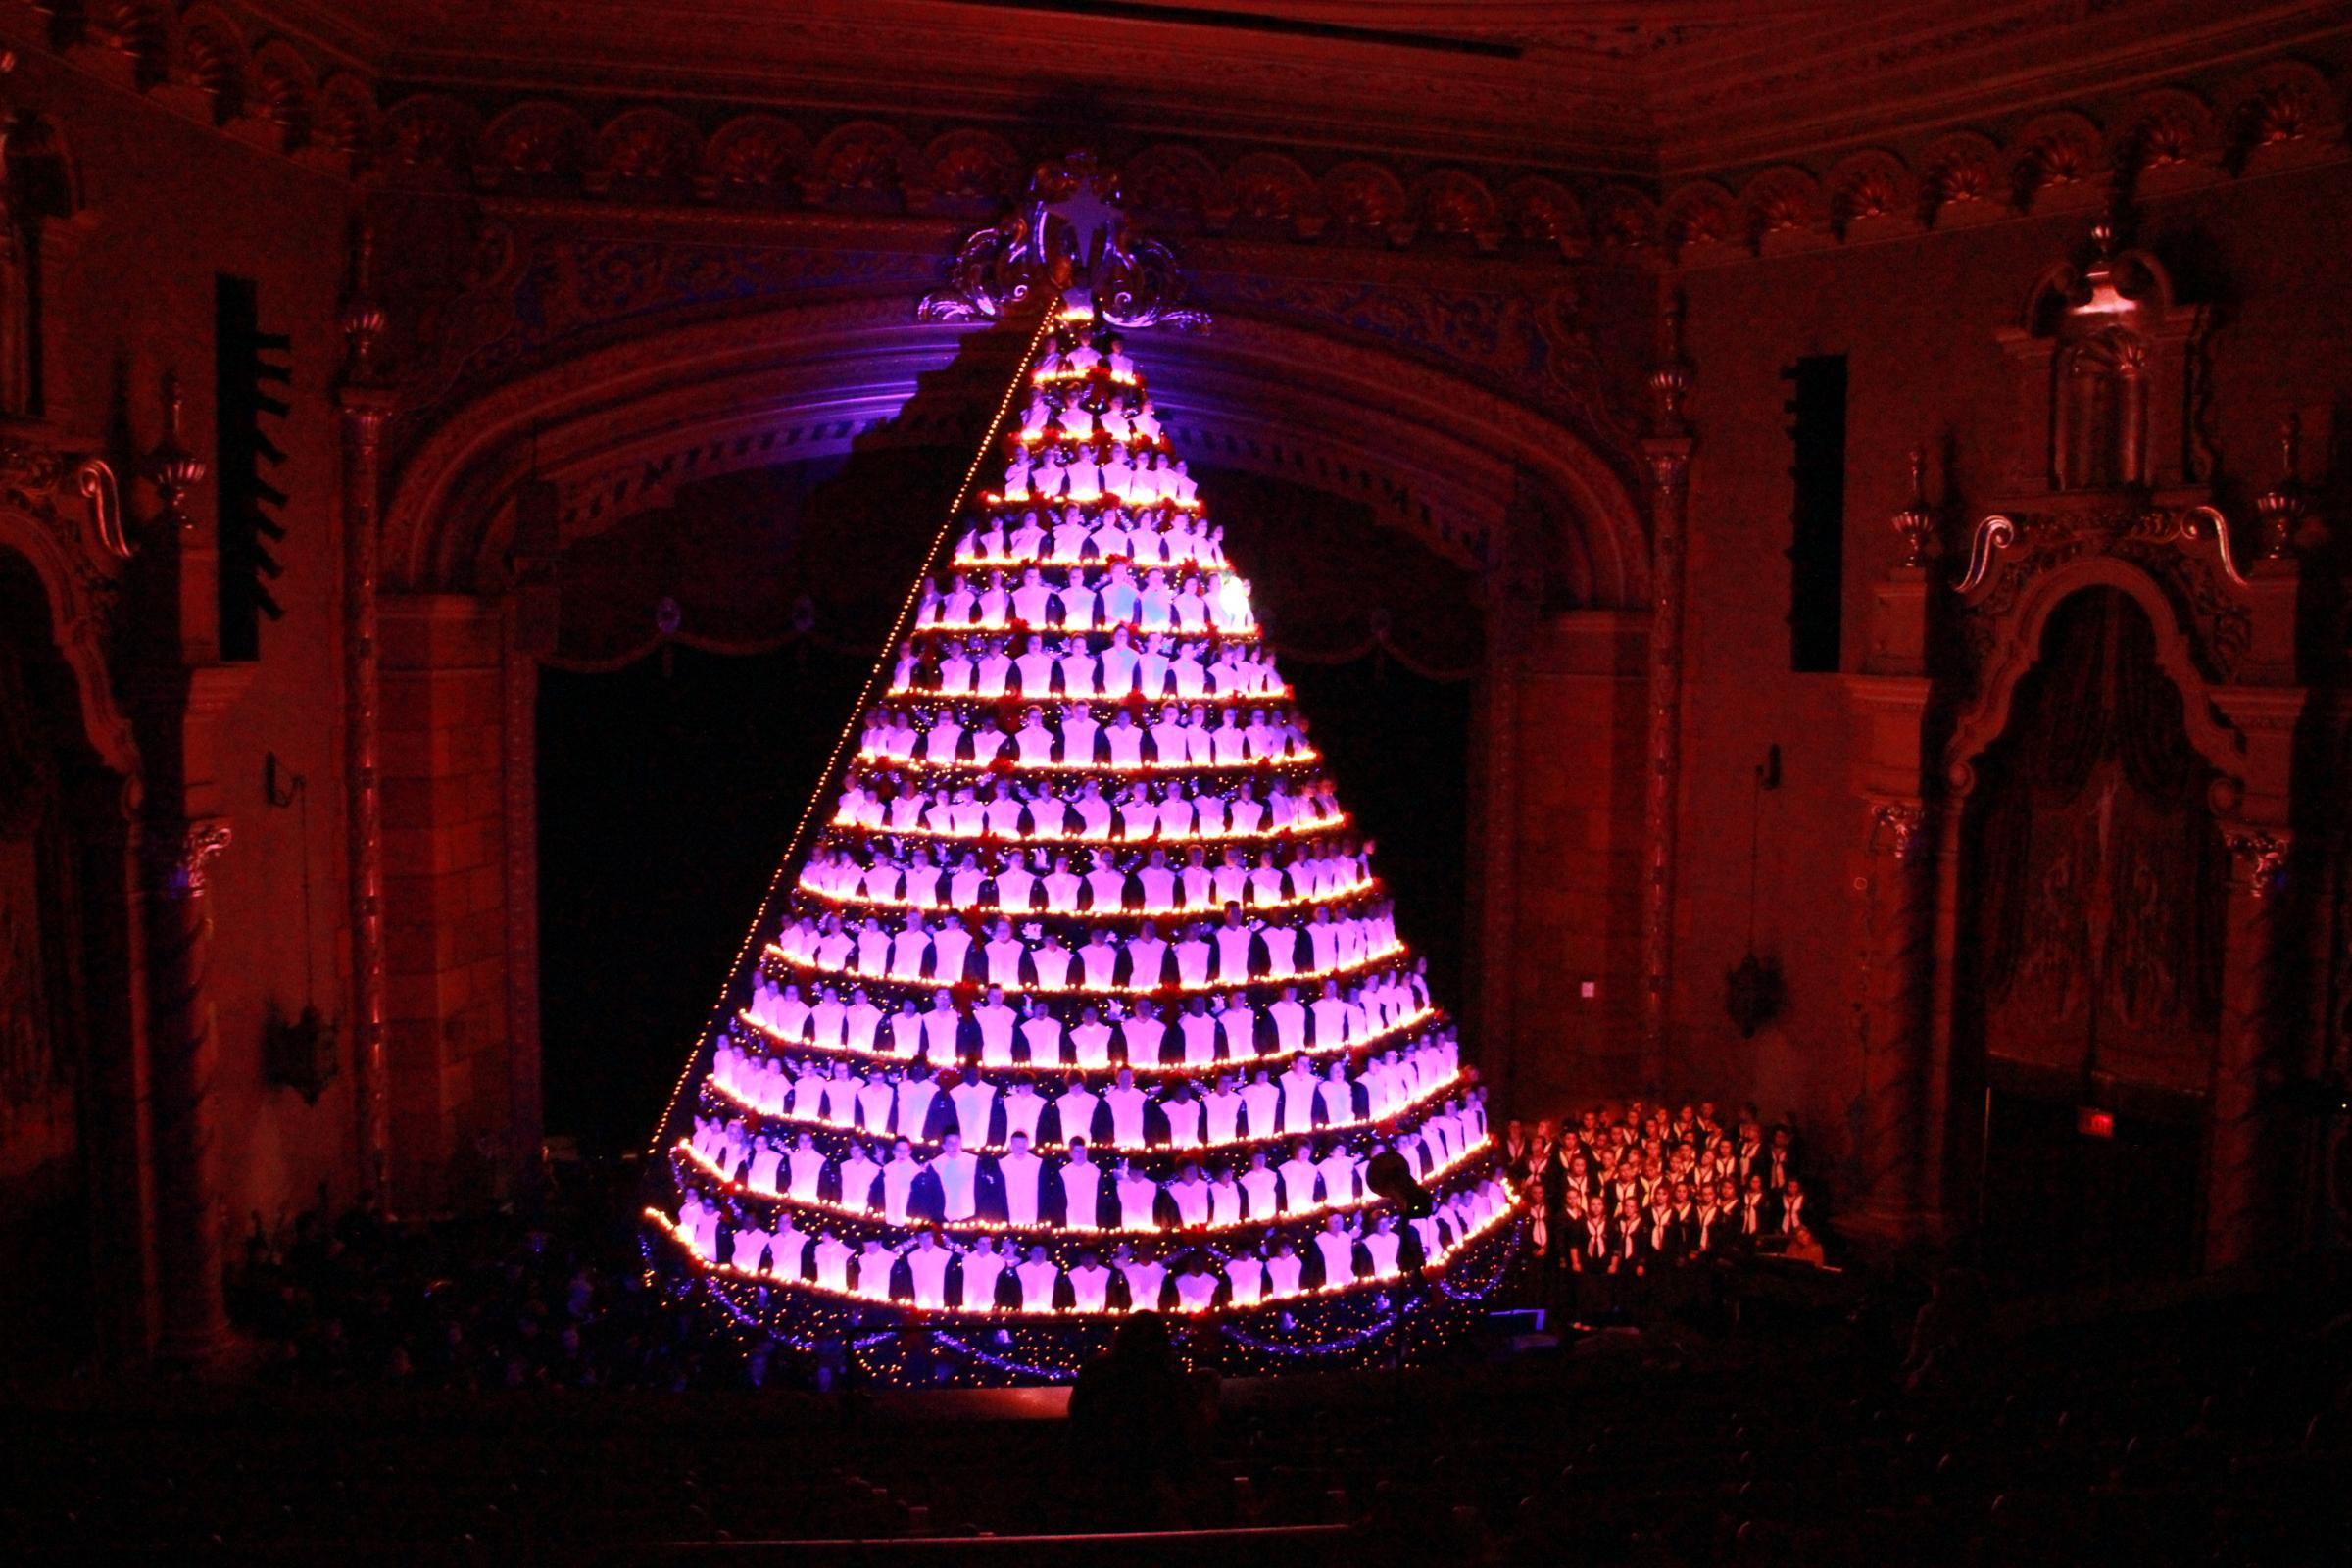 Muskegon is home to America's tallest, singing Christmas tree ...